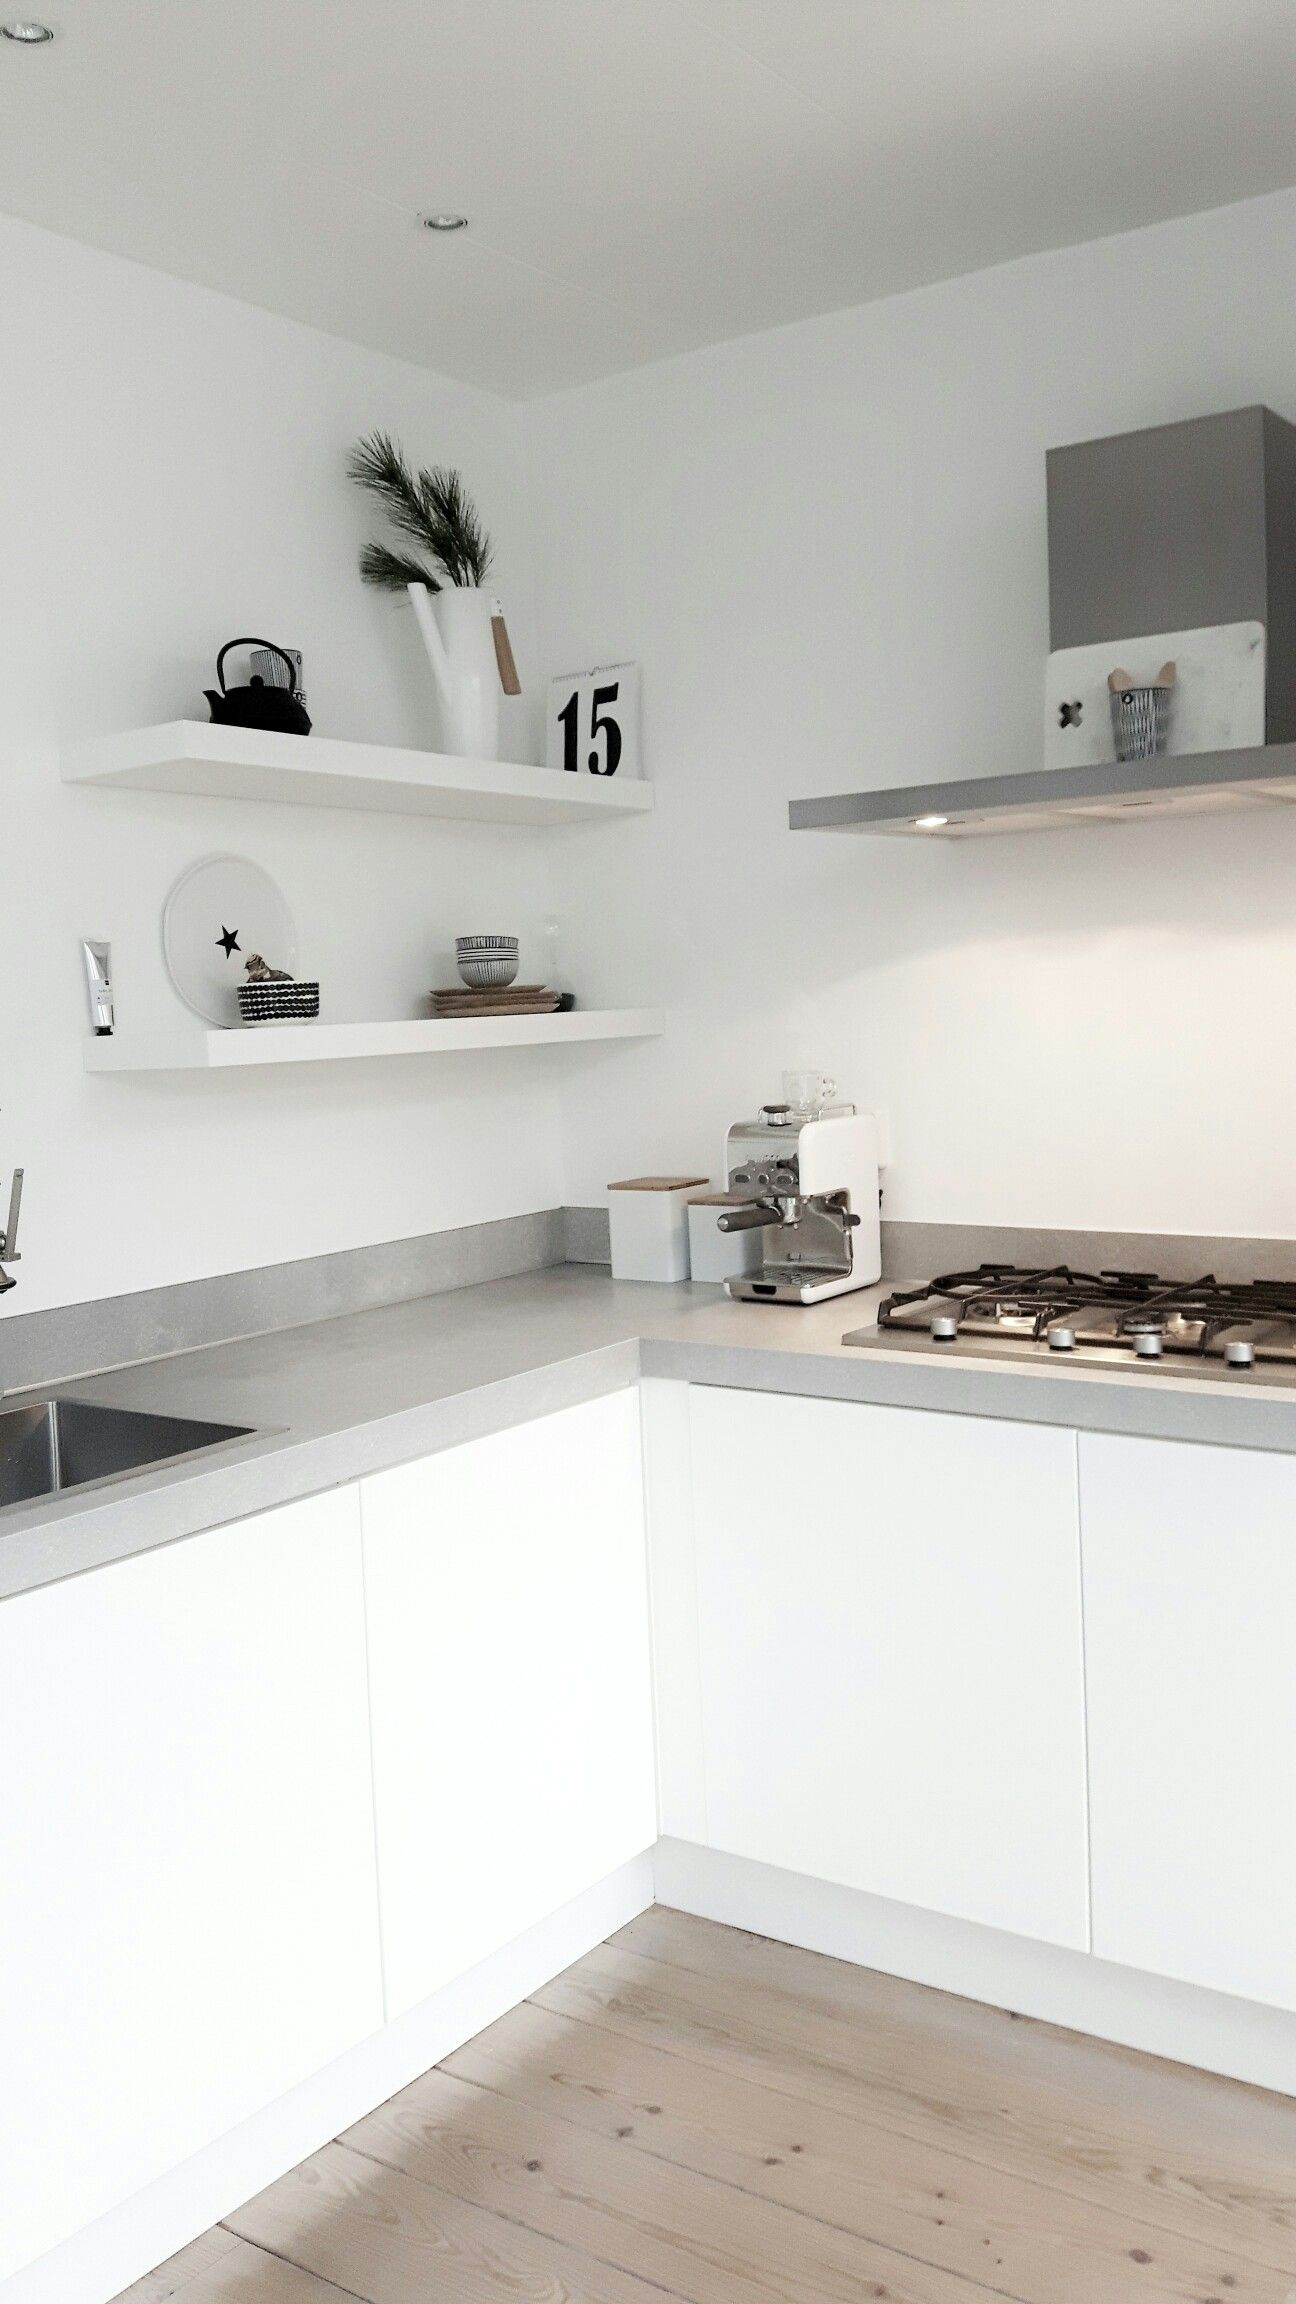 Cuisines Ikea Pin By Victoria Carles Andreu On Cuisine Salle De Bain In 2019